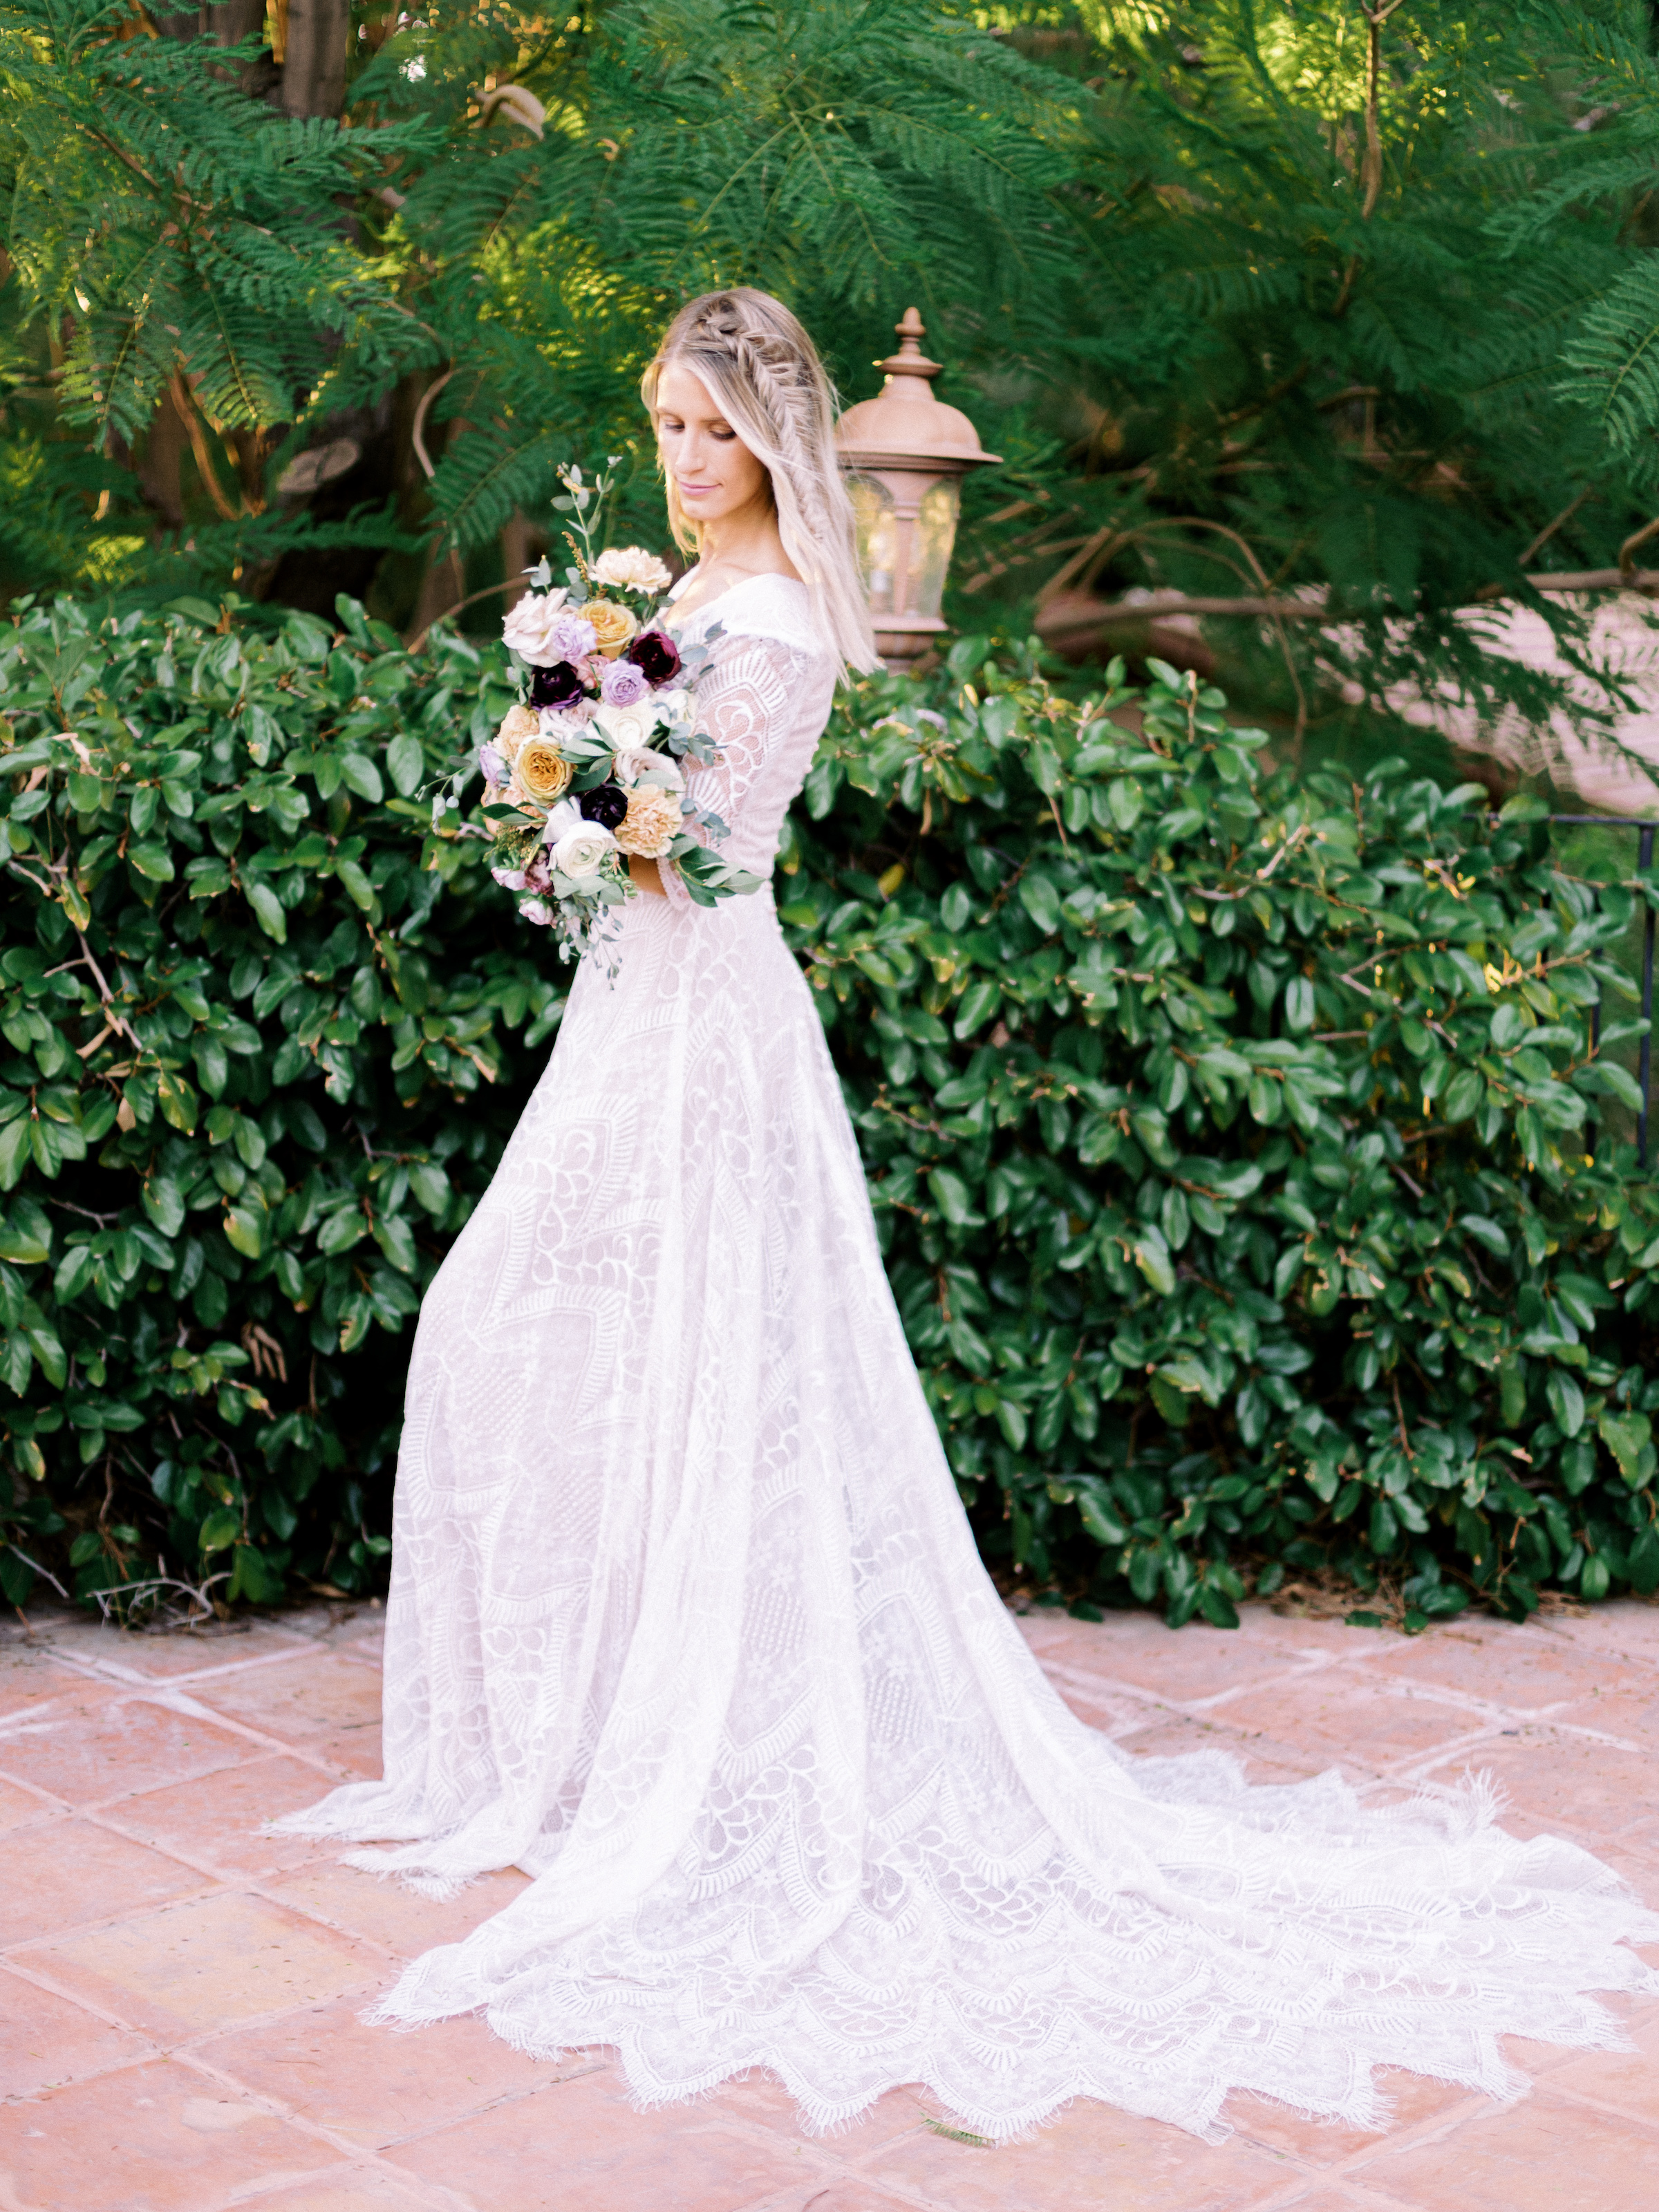 Boho Chic Wedding Dress Long Sleeve Romantic Rose Bouquet Wright House Truth And Beauty Photography